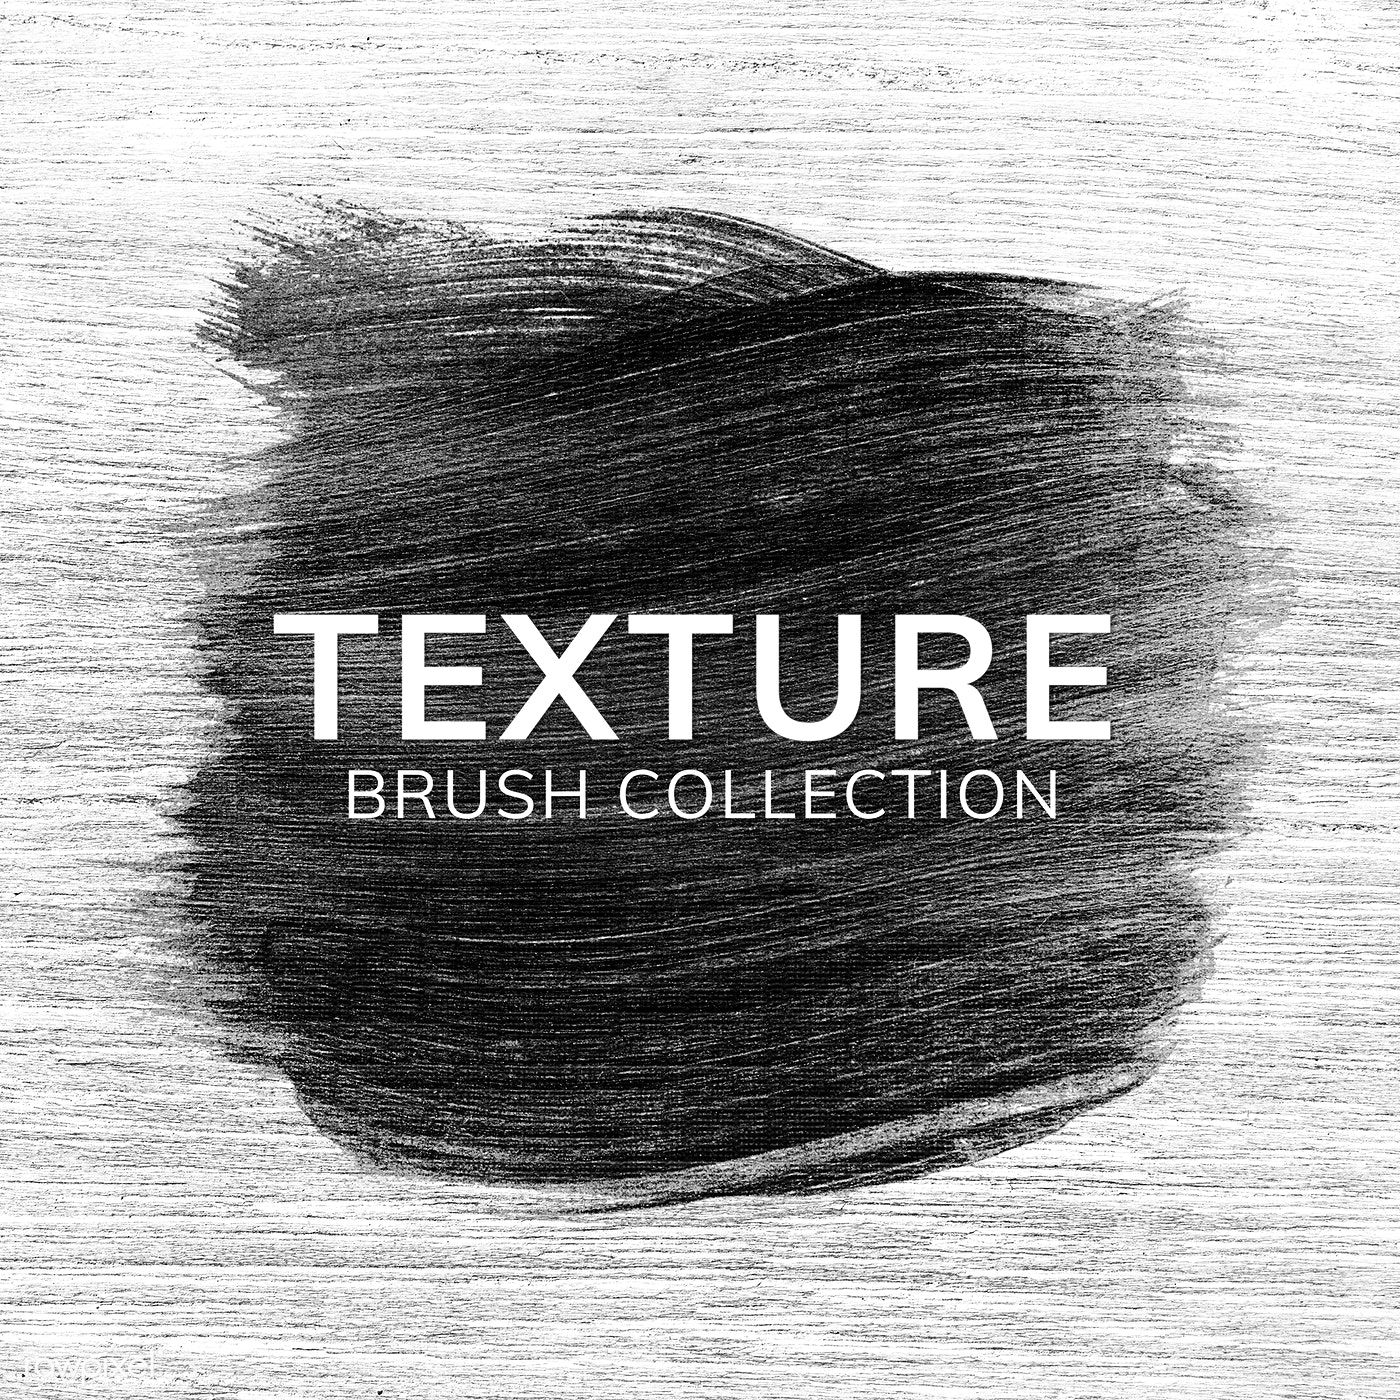 Download Premium Psd Of Black Oil Paint Brush Stroke Texture On A